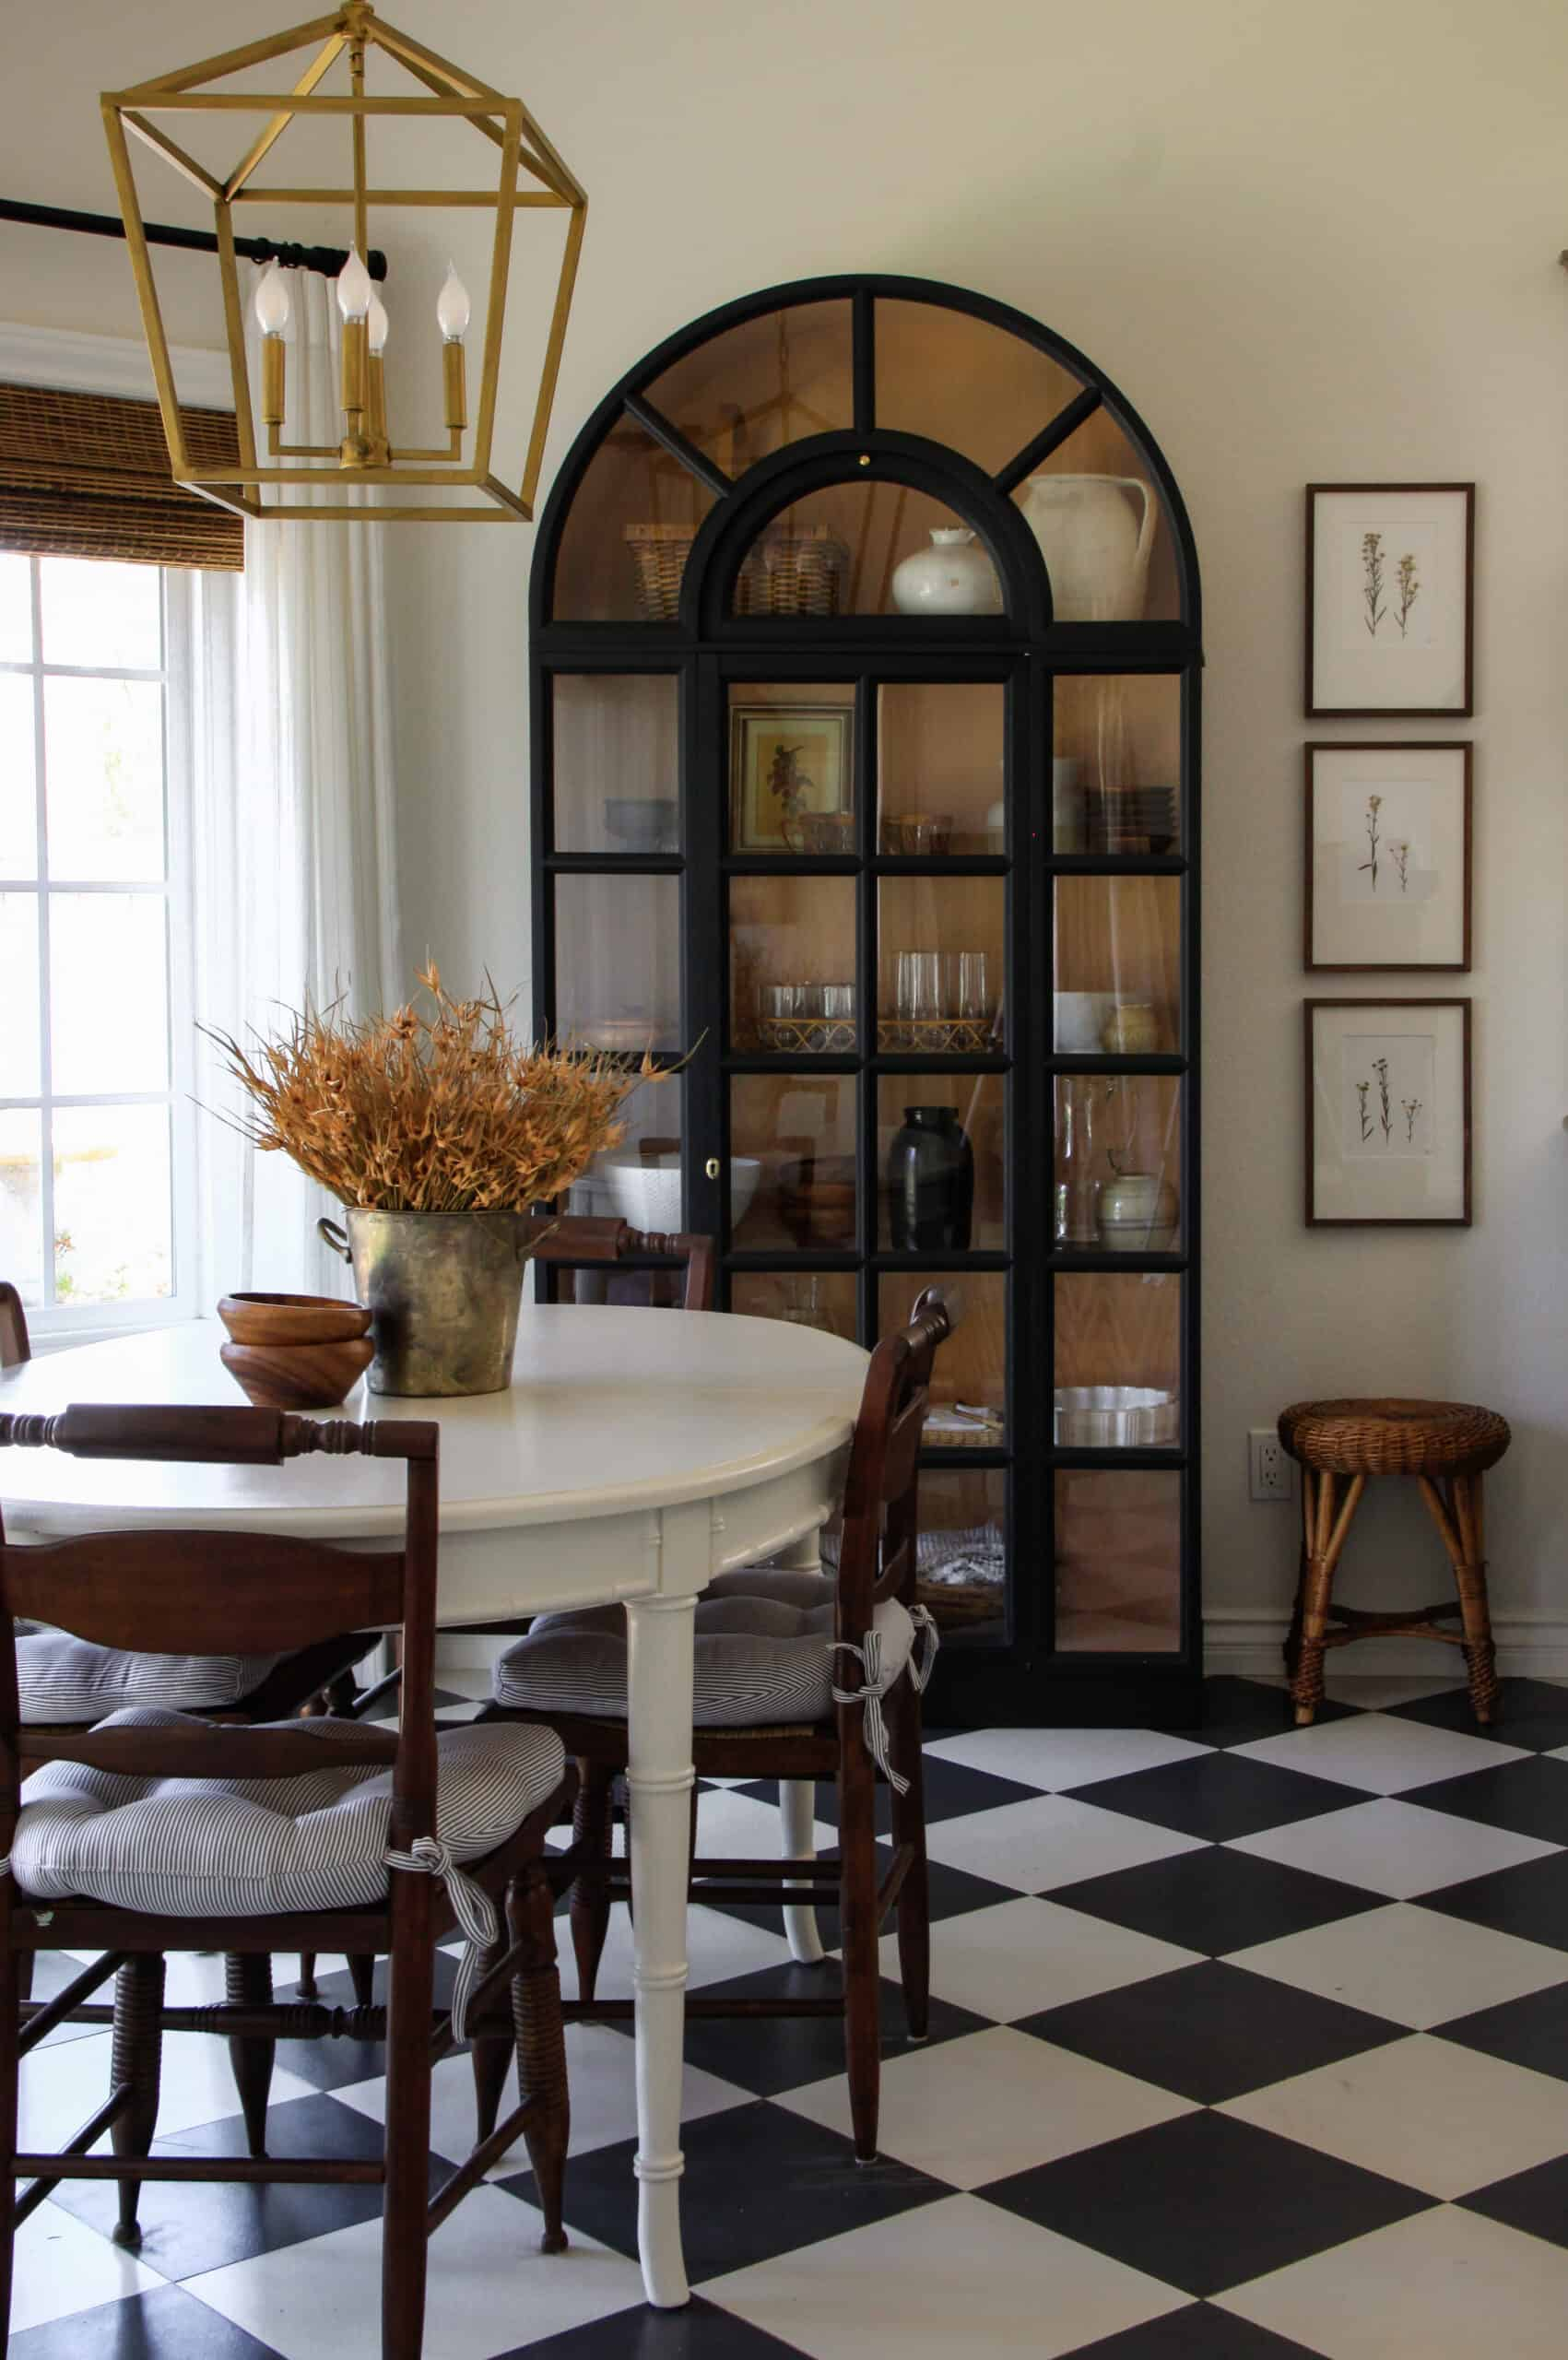 breakfast nook with checkered floors and wheat on the table in front of cabinet